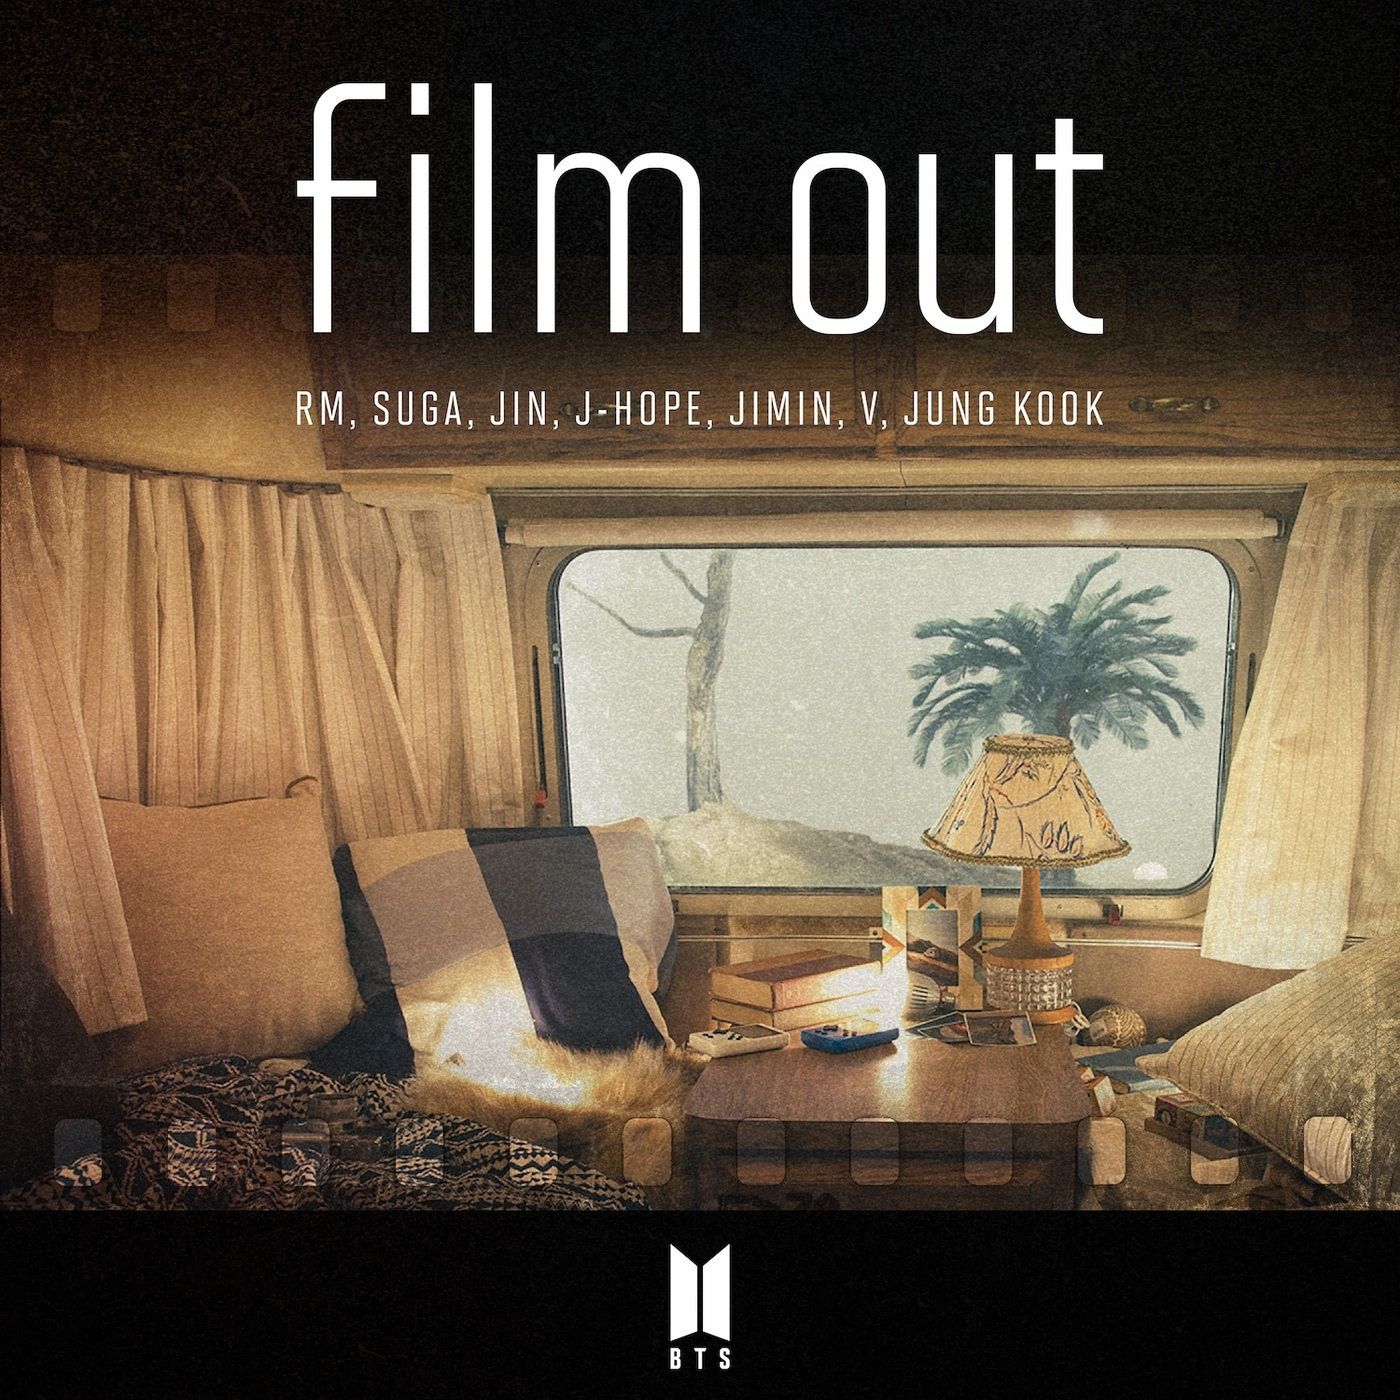 BTS's new song'Film Out' in Japan ranked 1st in Oricon for the second day